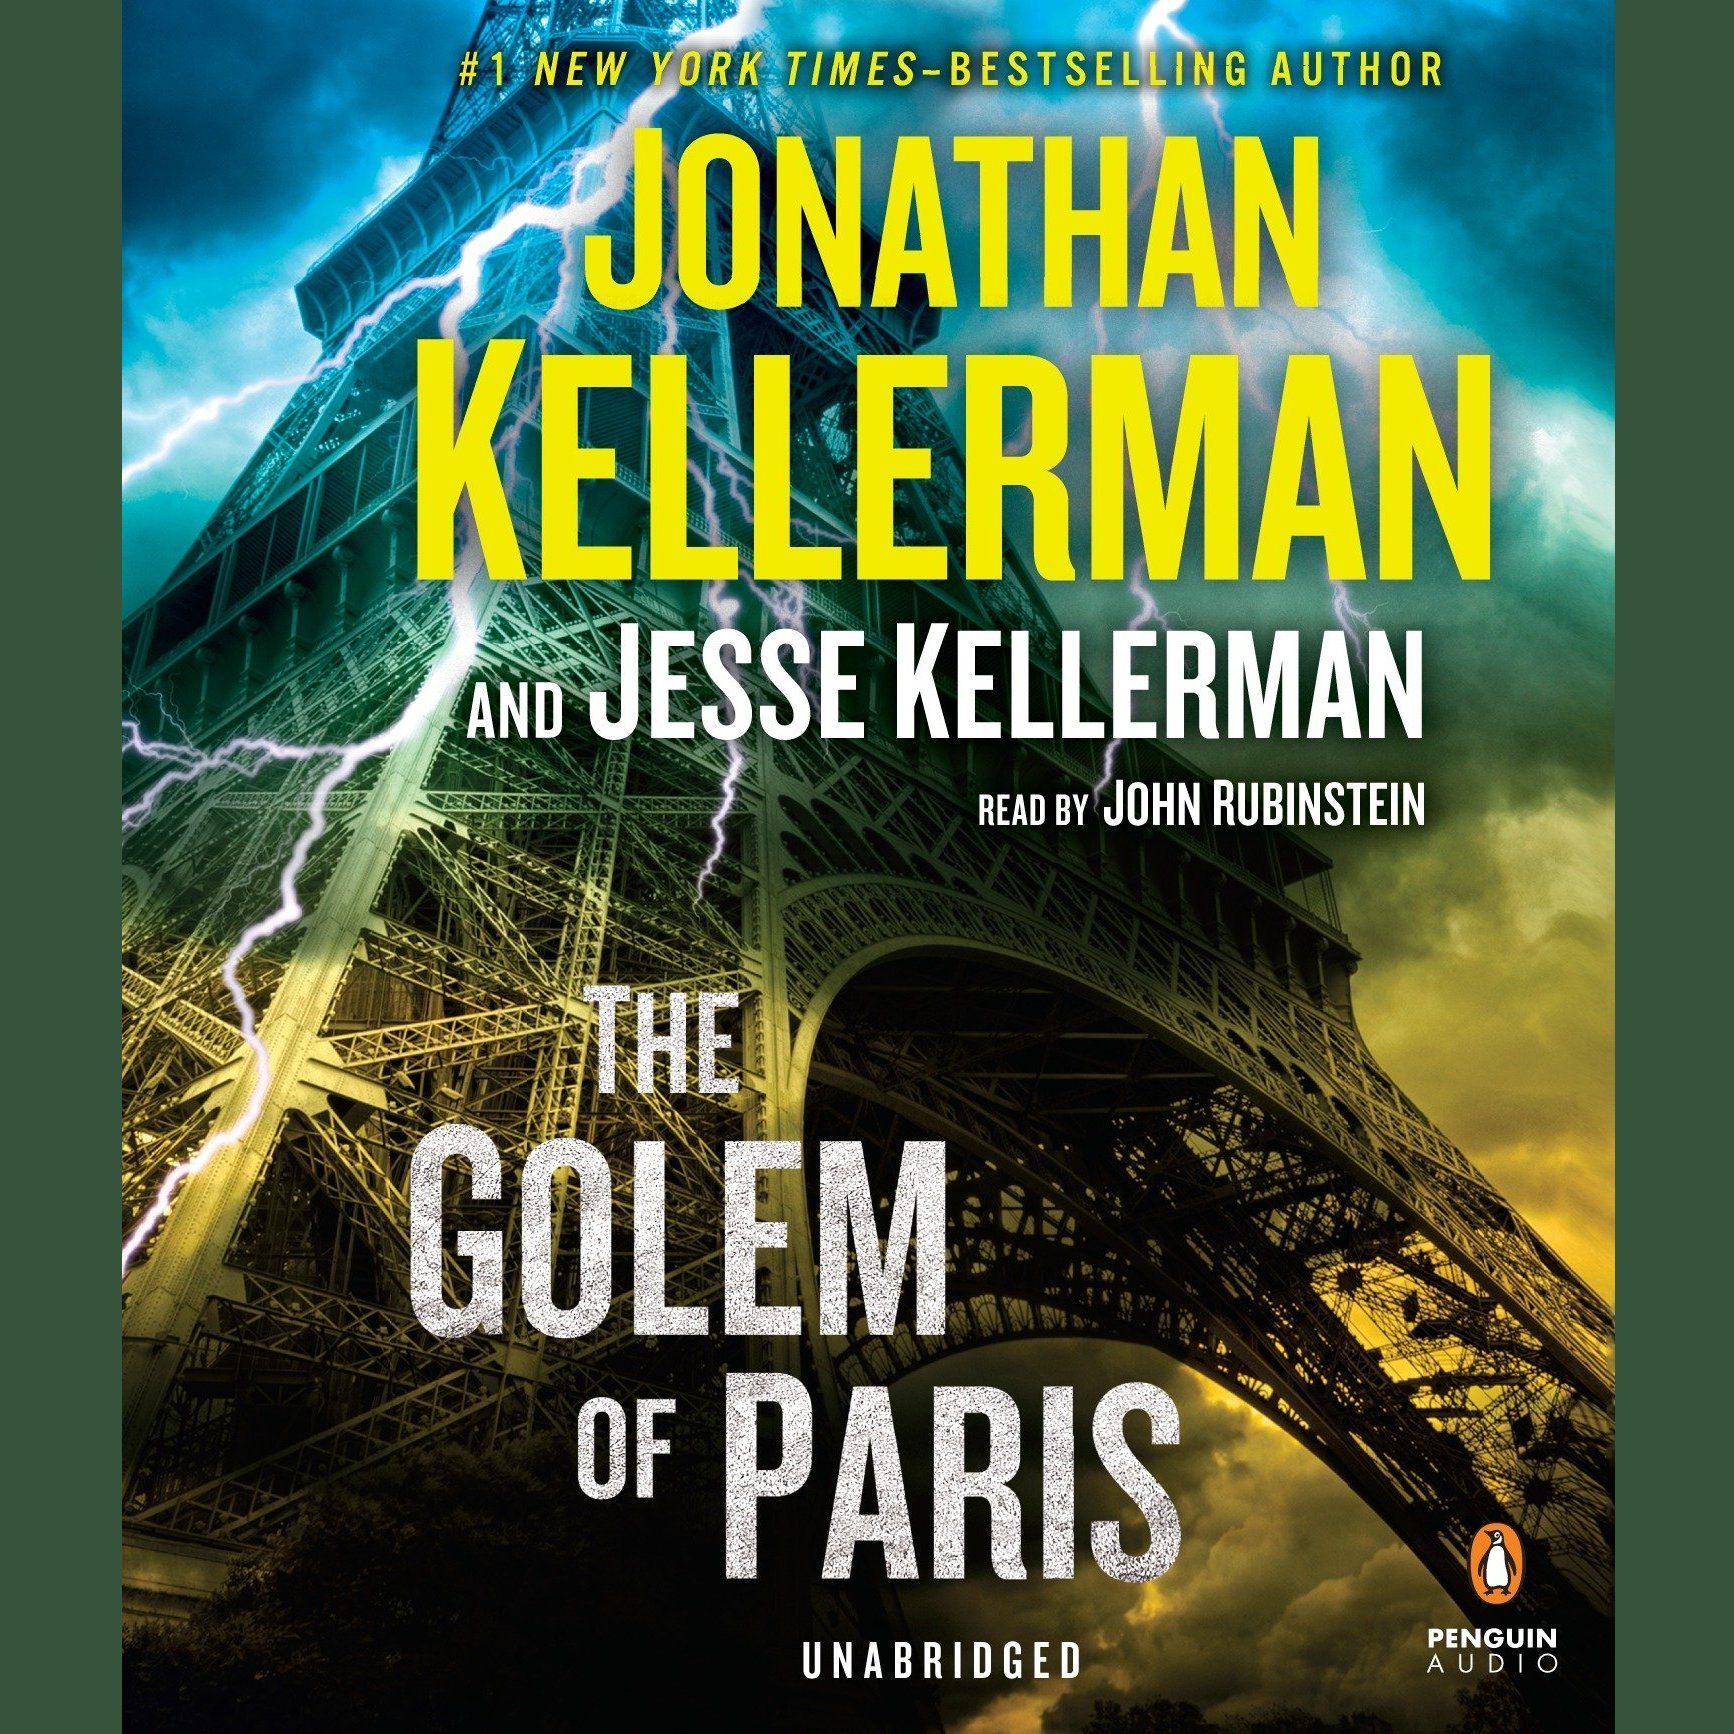 Printable The Golem of Paris Audiobook Cover Art